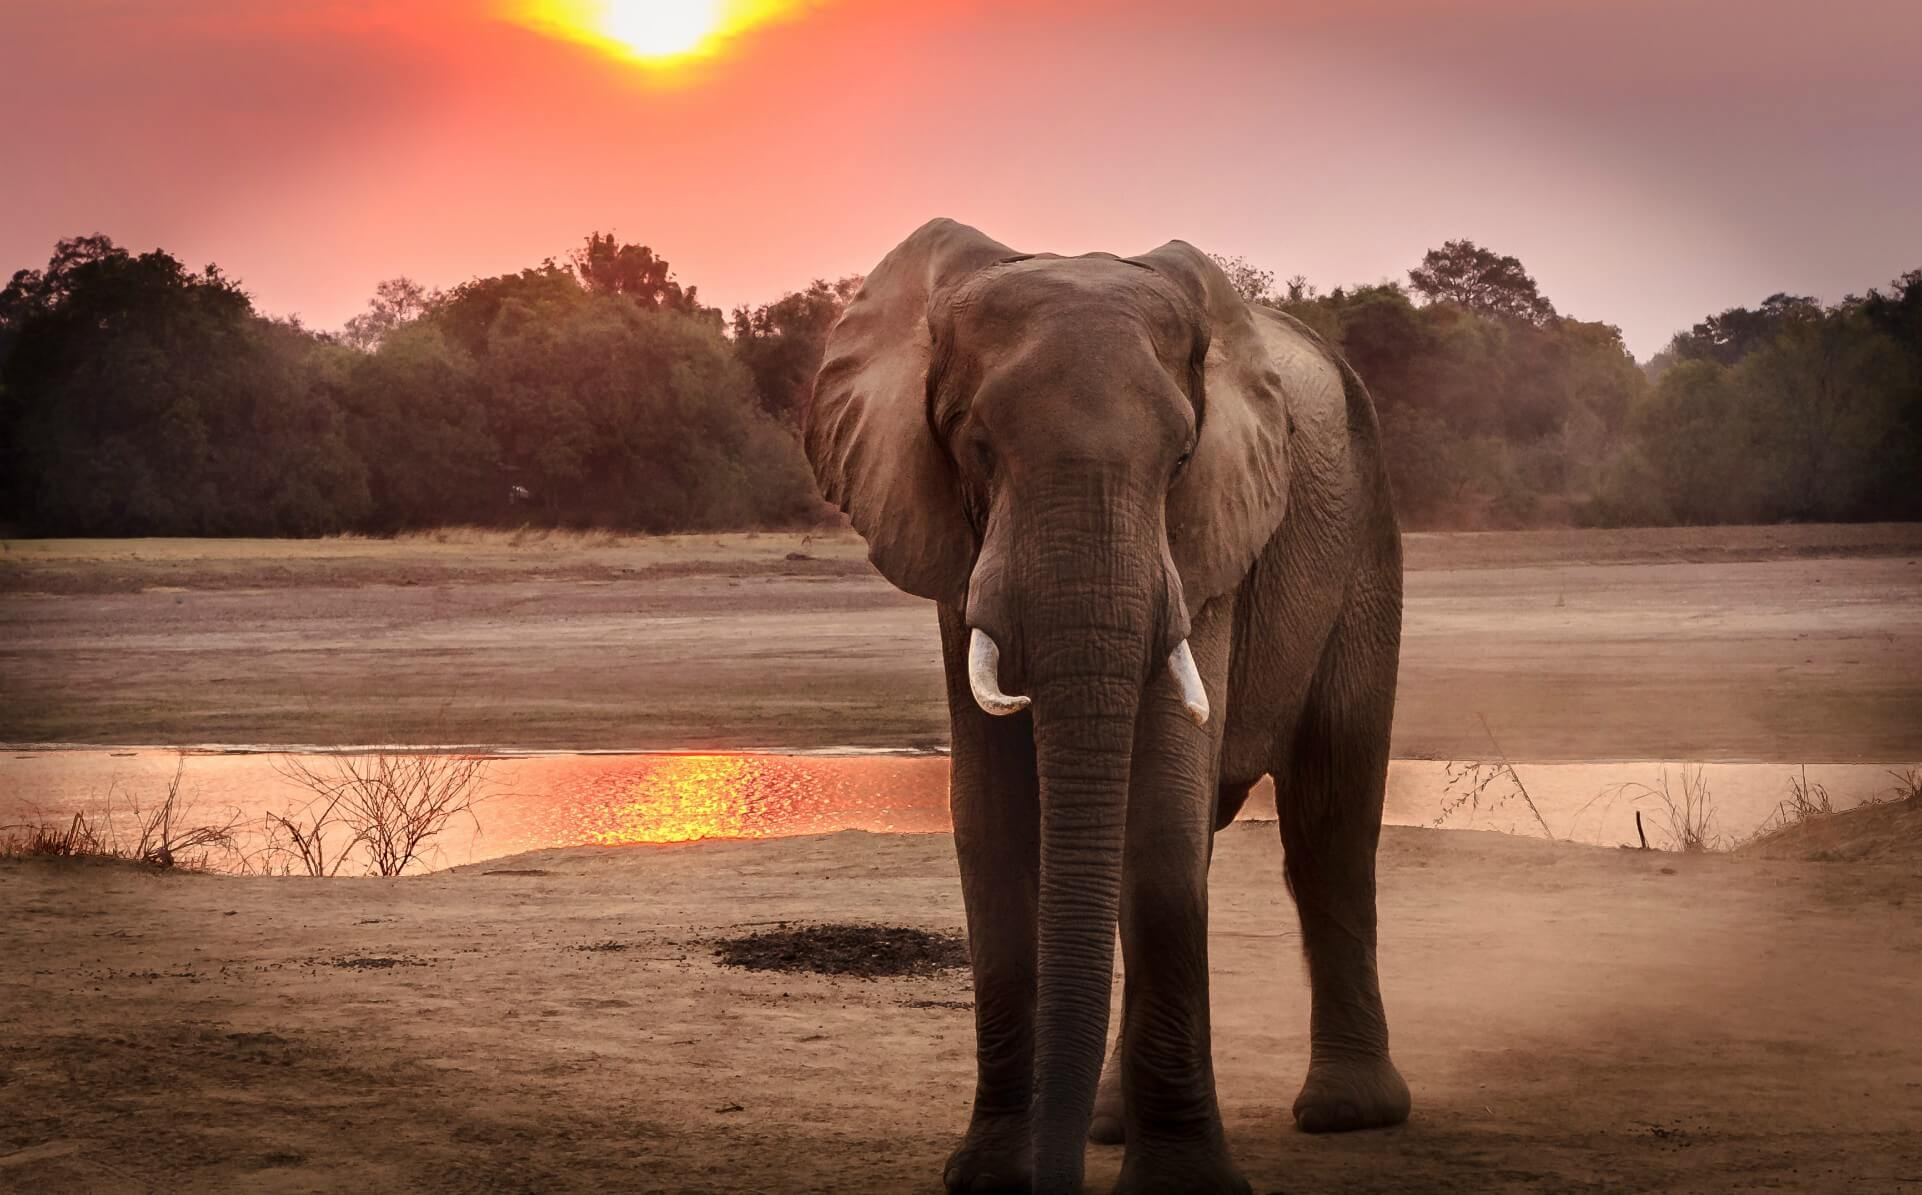 wildlife-photography-of-elephant-during-golden-hour-1054655 (1)